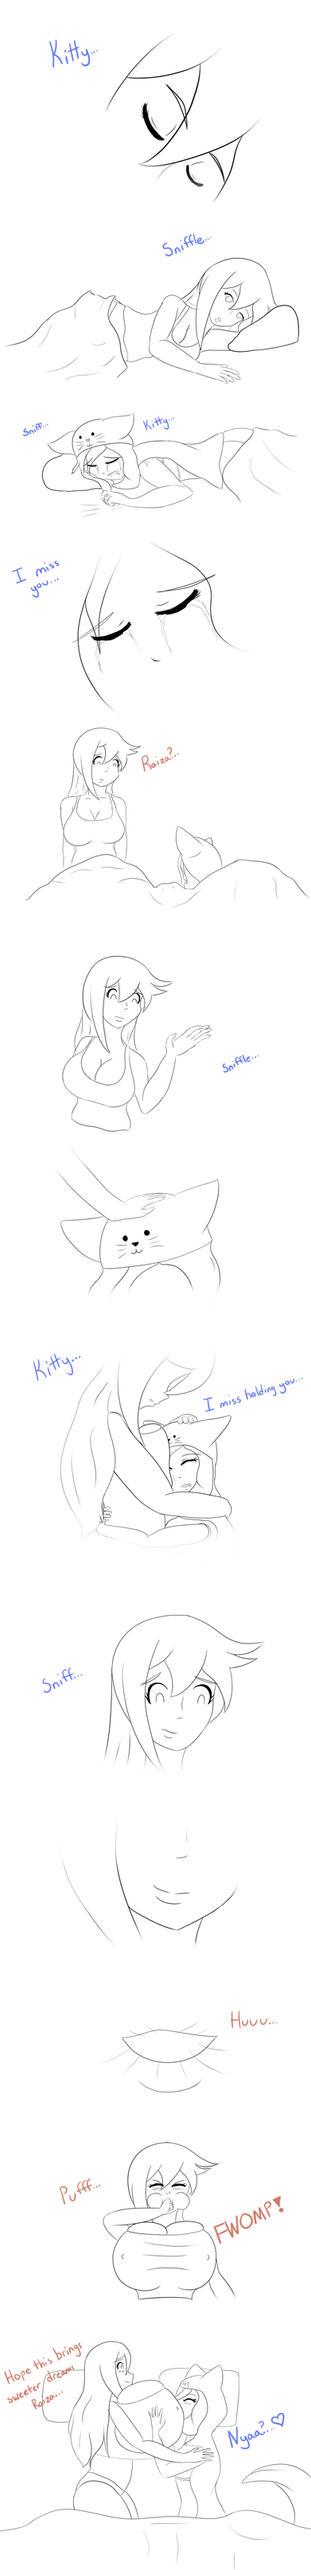 Kitty... by Loner2000